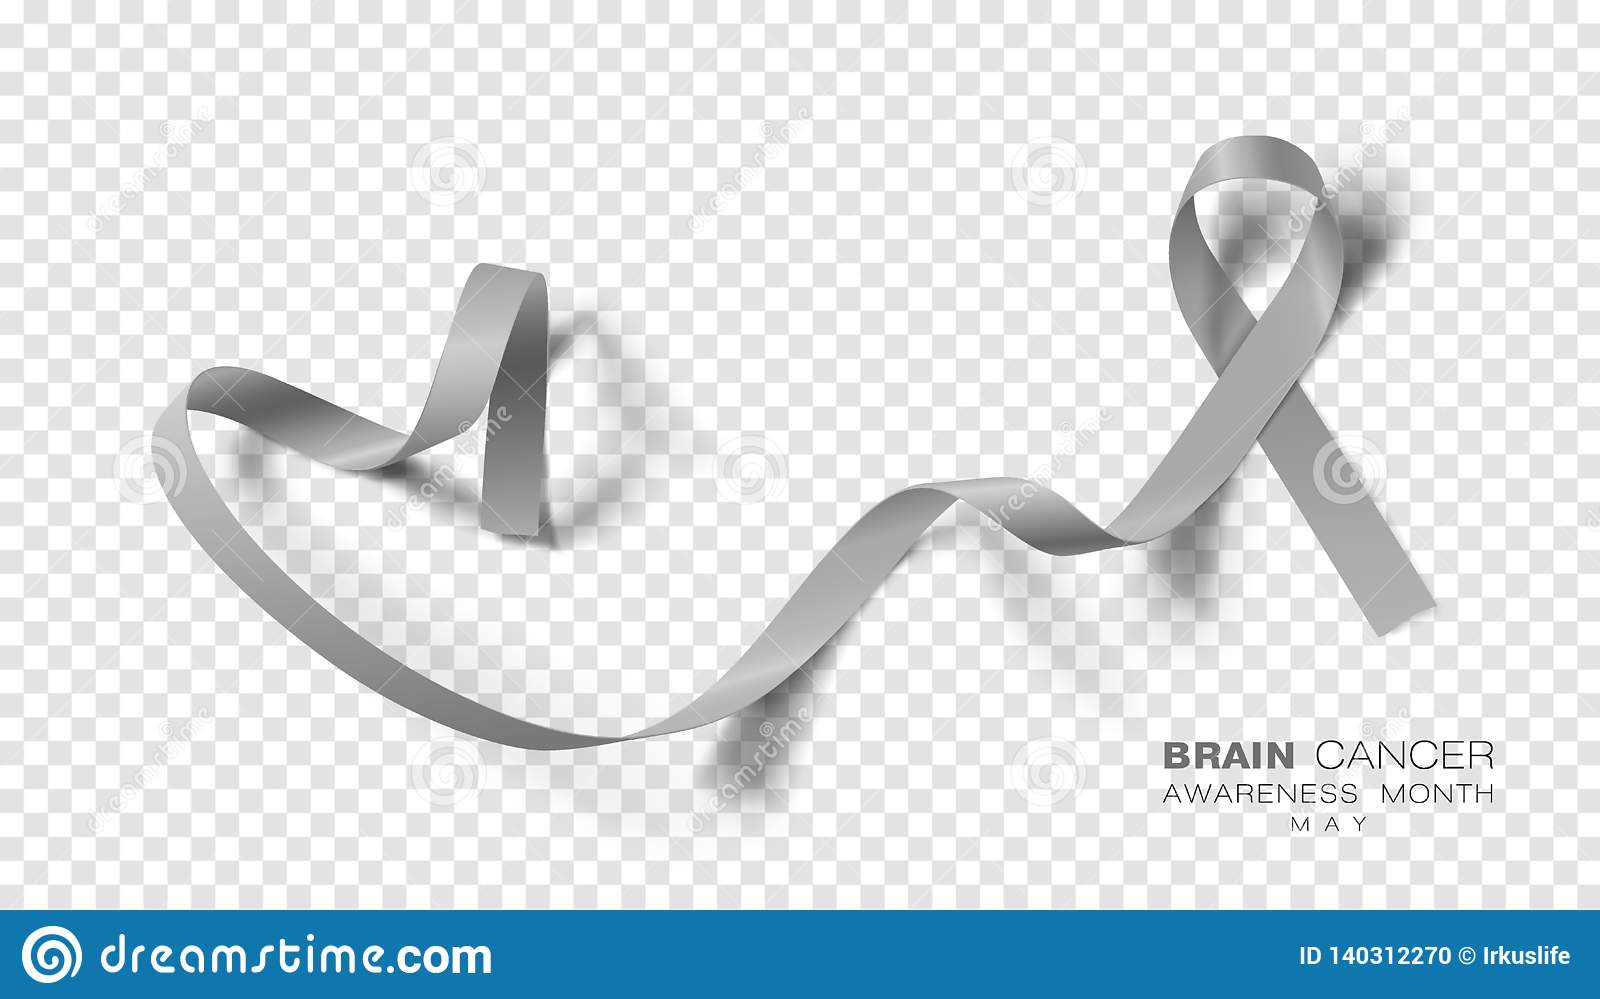 Brain Cancer Awareness Month Grey Color Ribbon Isolated On genomskinlig bakgrund Vektordesignmall för affisch